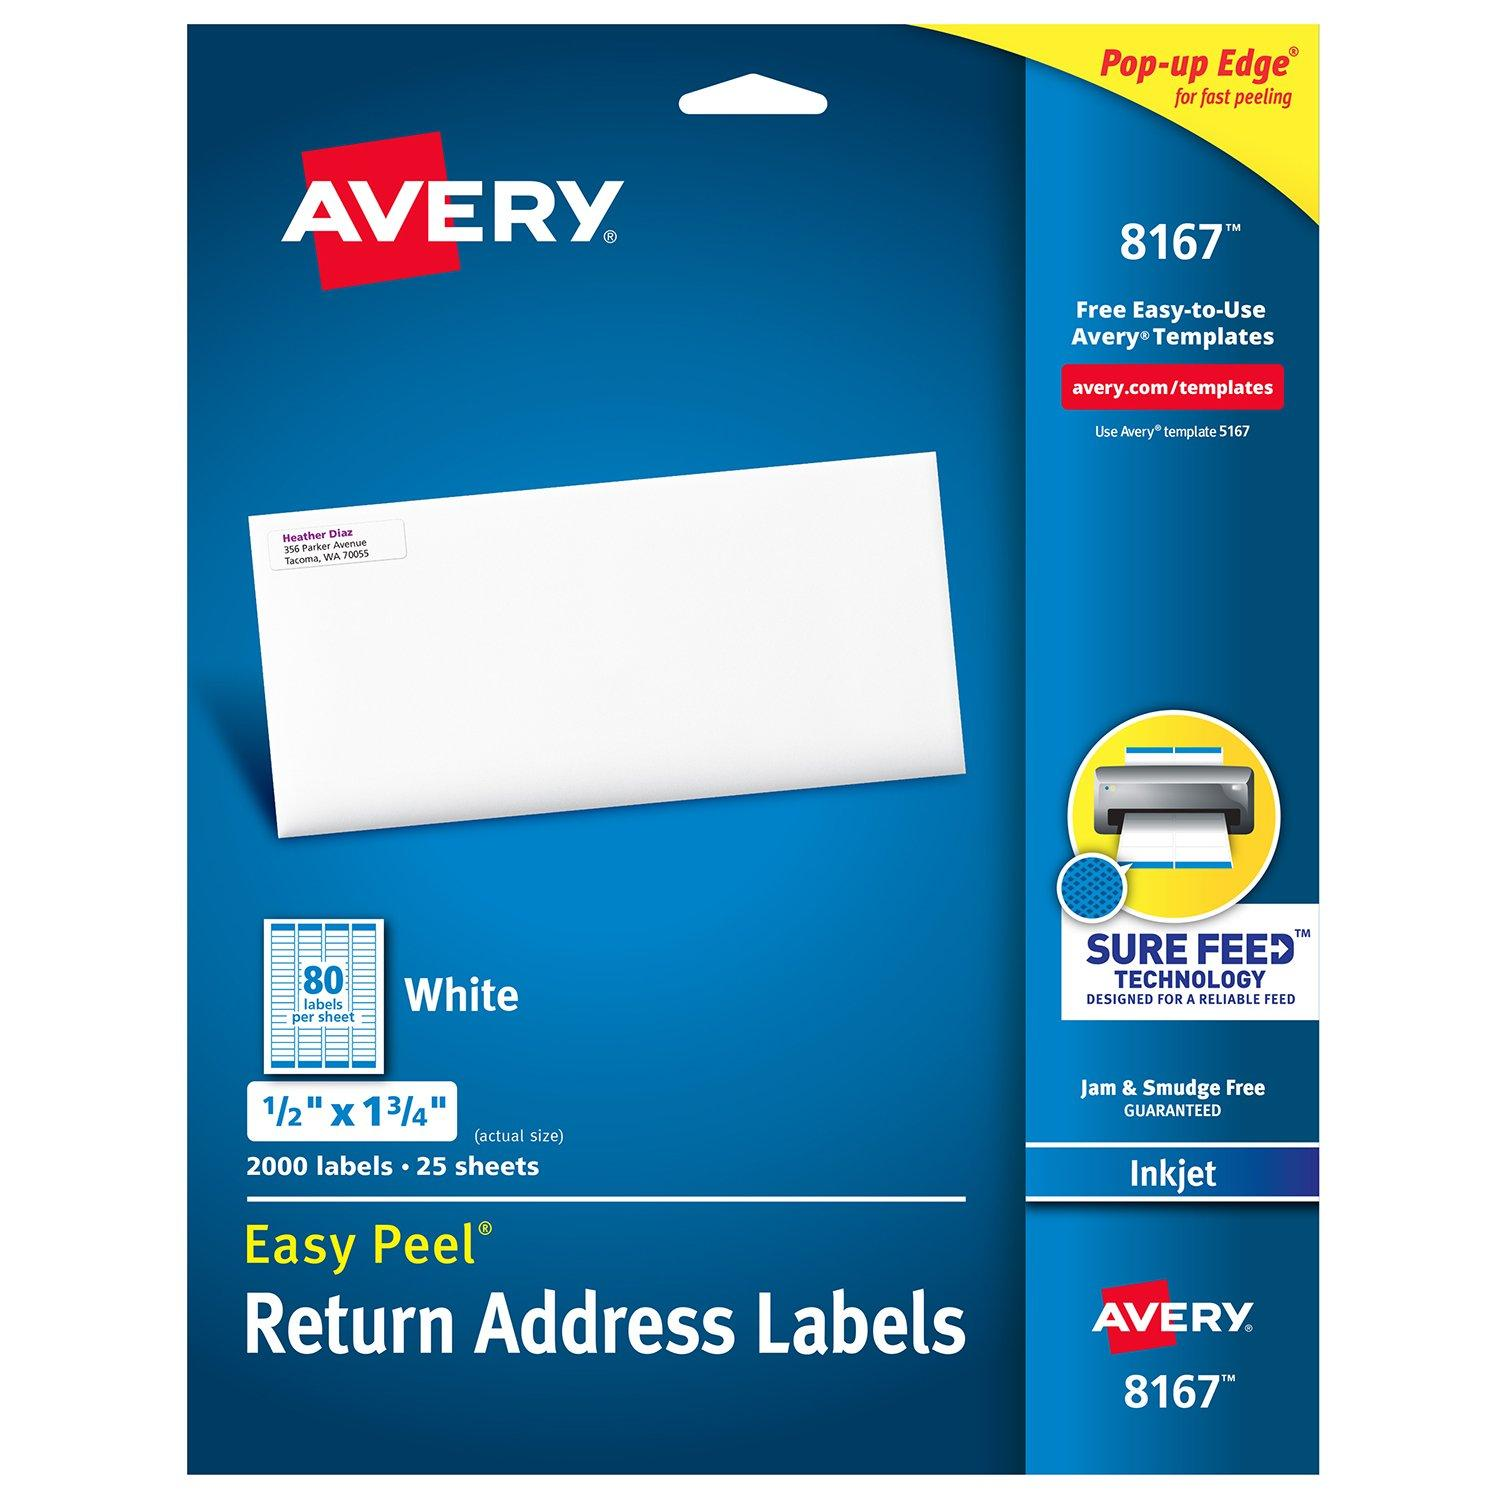 Avery Return Address Label Template 5667